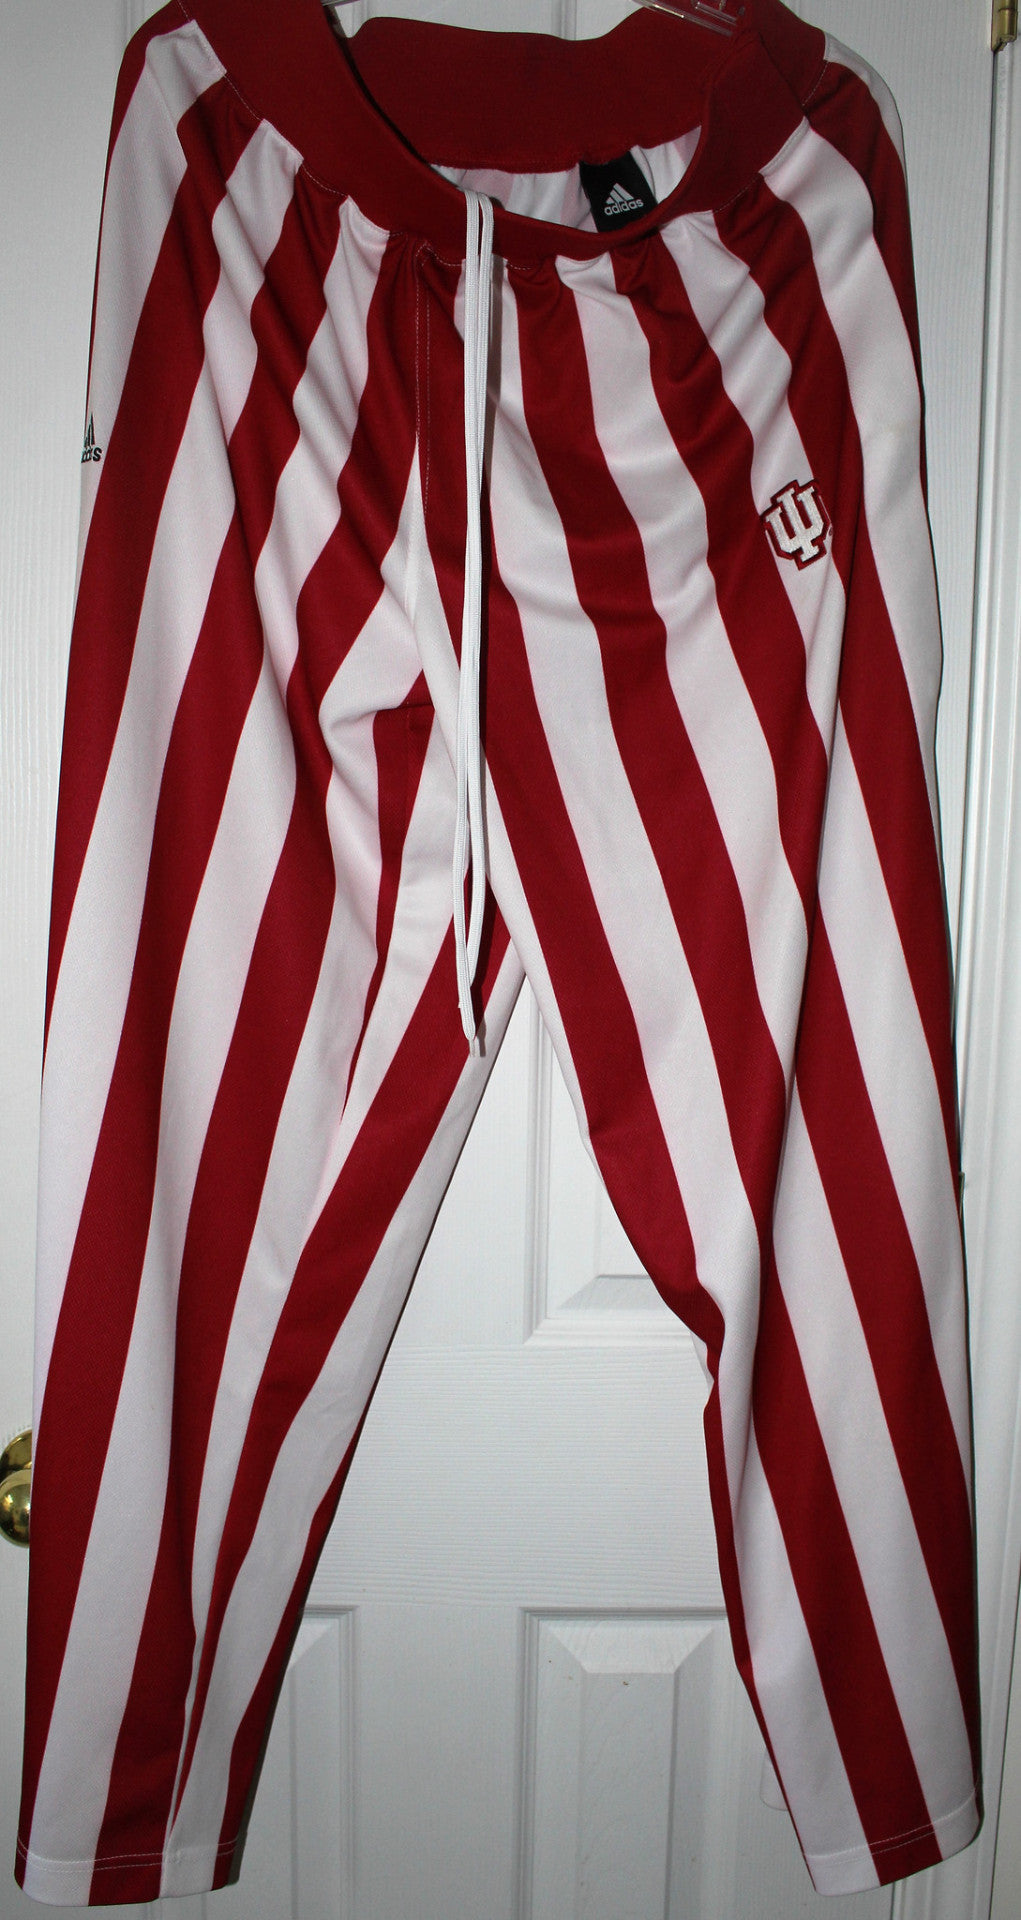 Indiana University Basketball Candy Stripe Warm Up Pants, SZ LG - Vintage Indy Sports